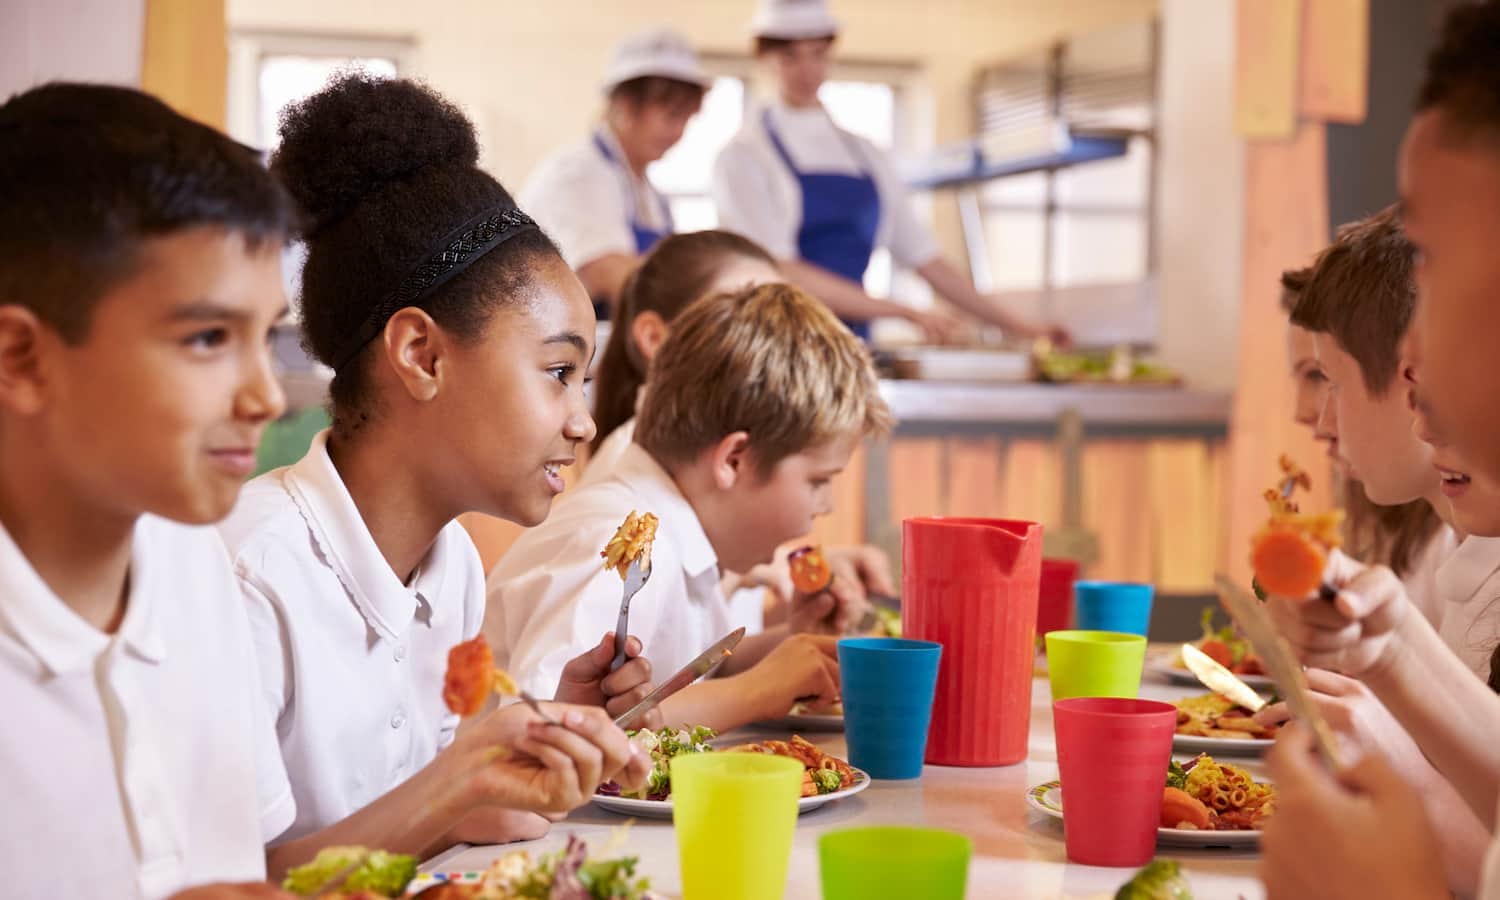 Faced with nation-wide closures in response to COVID-19, school authorities and partners are stepping up to feed the 30 million children that depend on school food service each day.